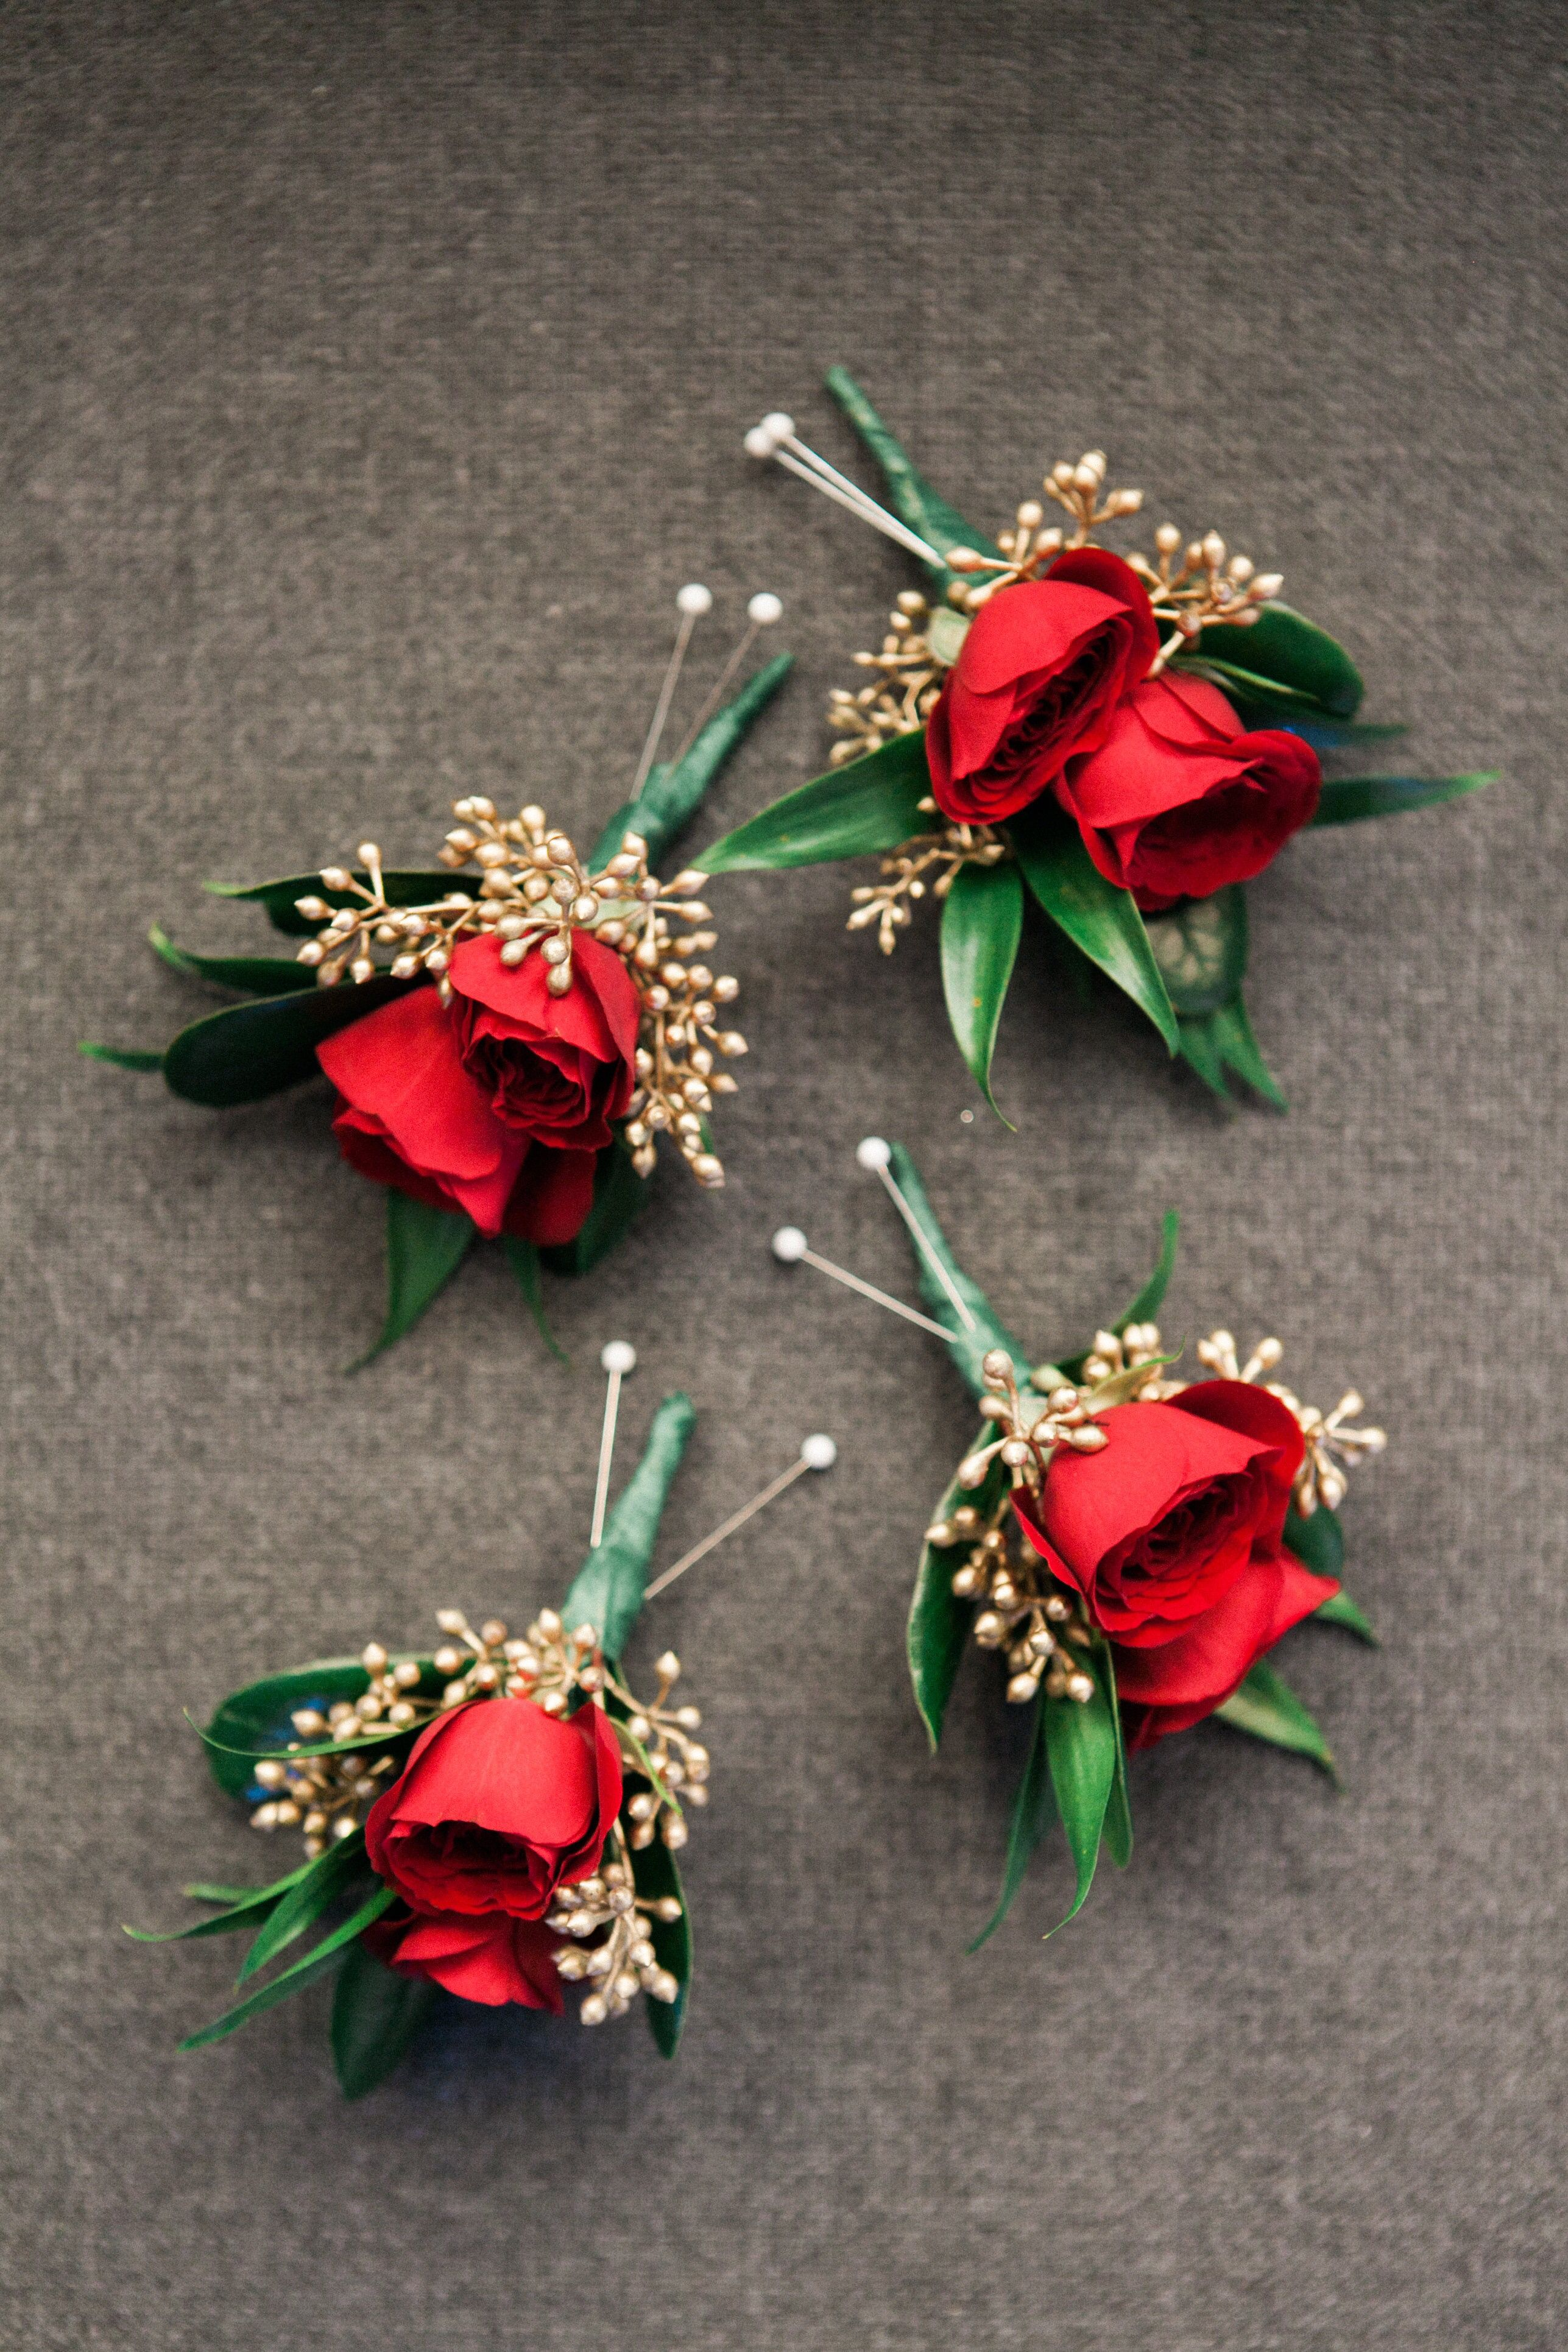 red rose boutonni232re with gold seeded accent contact